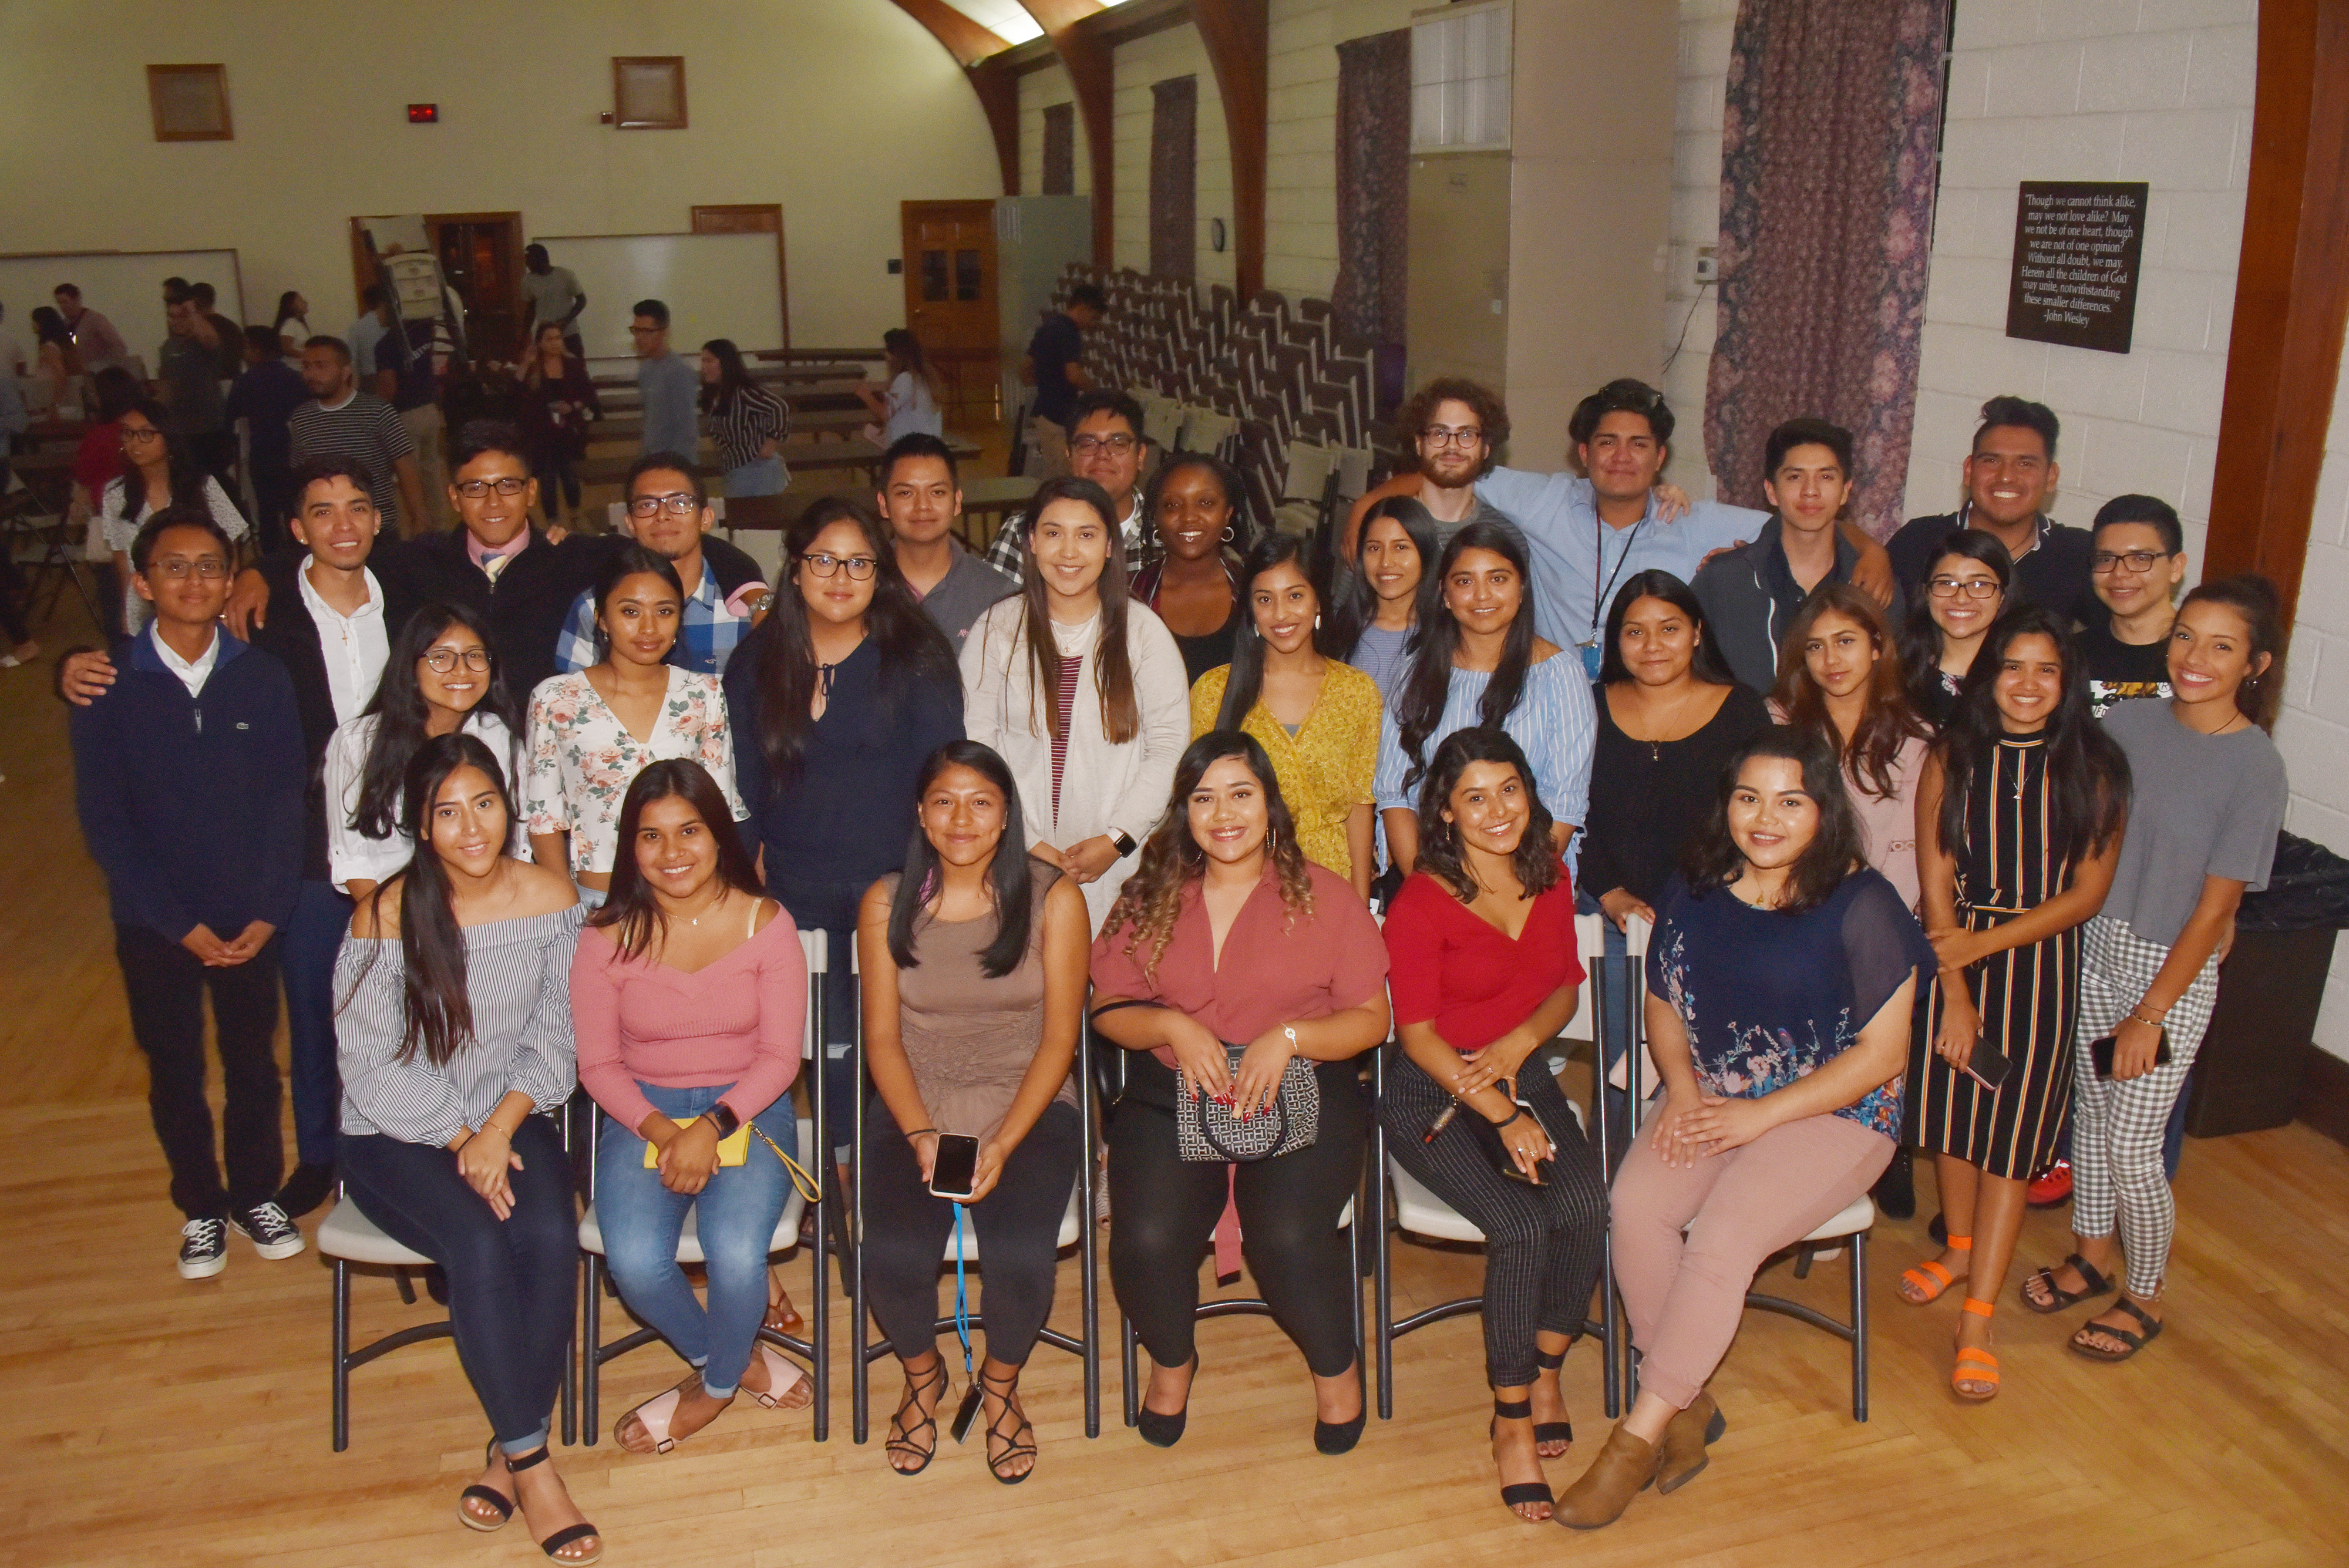 The newest class of Dreamers at Delaware State University were welcomed at an Aug. 29 reception.